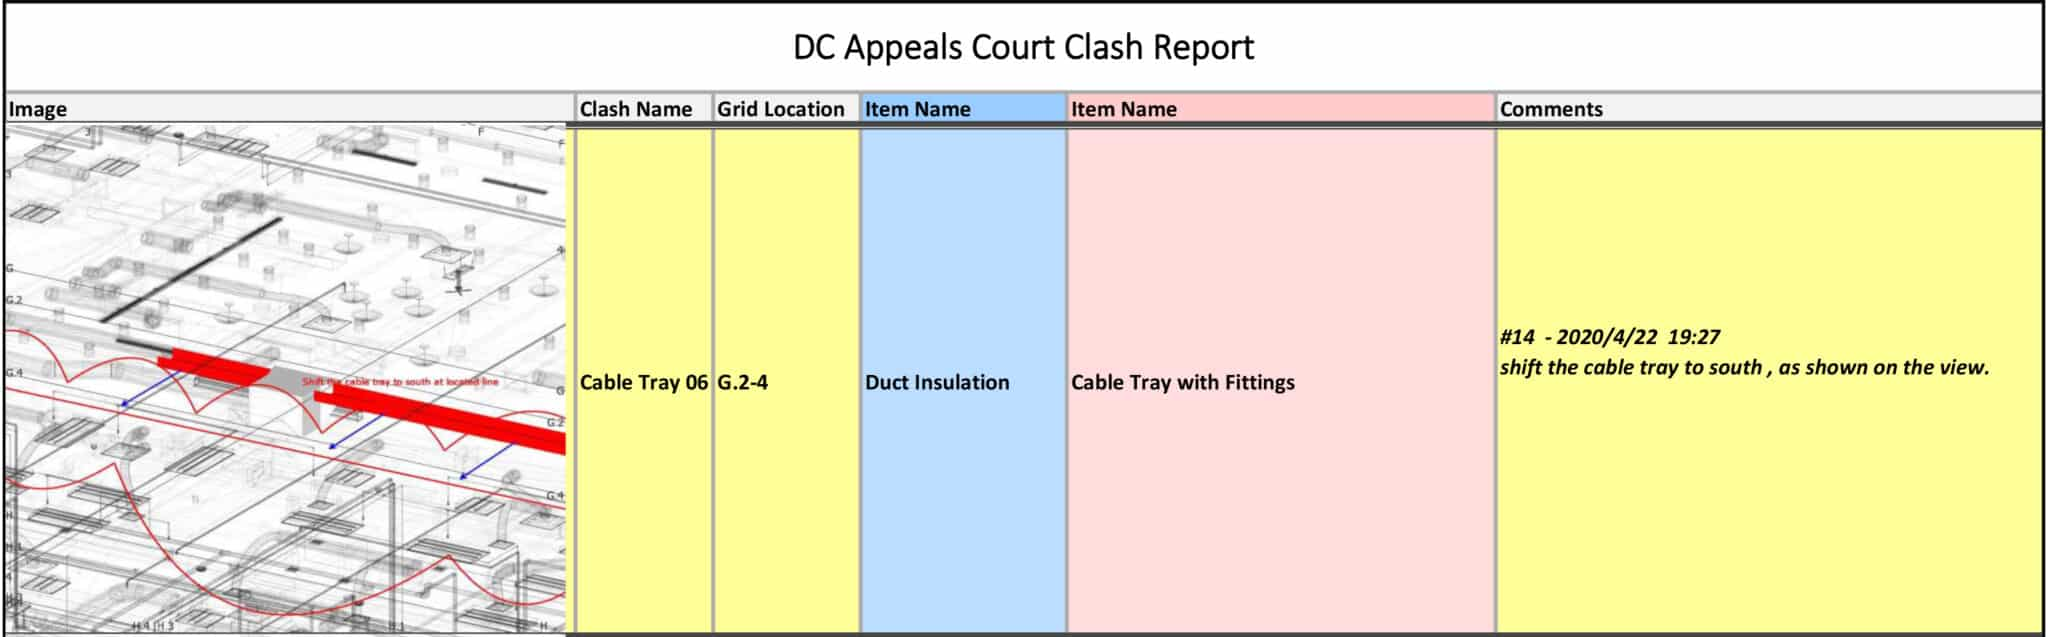 Tejjy   Clash Detection and Resolution